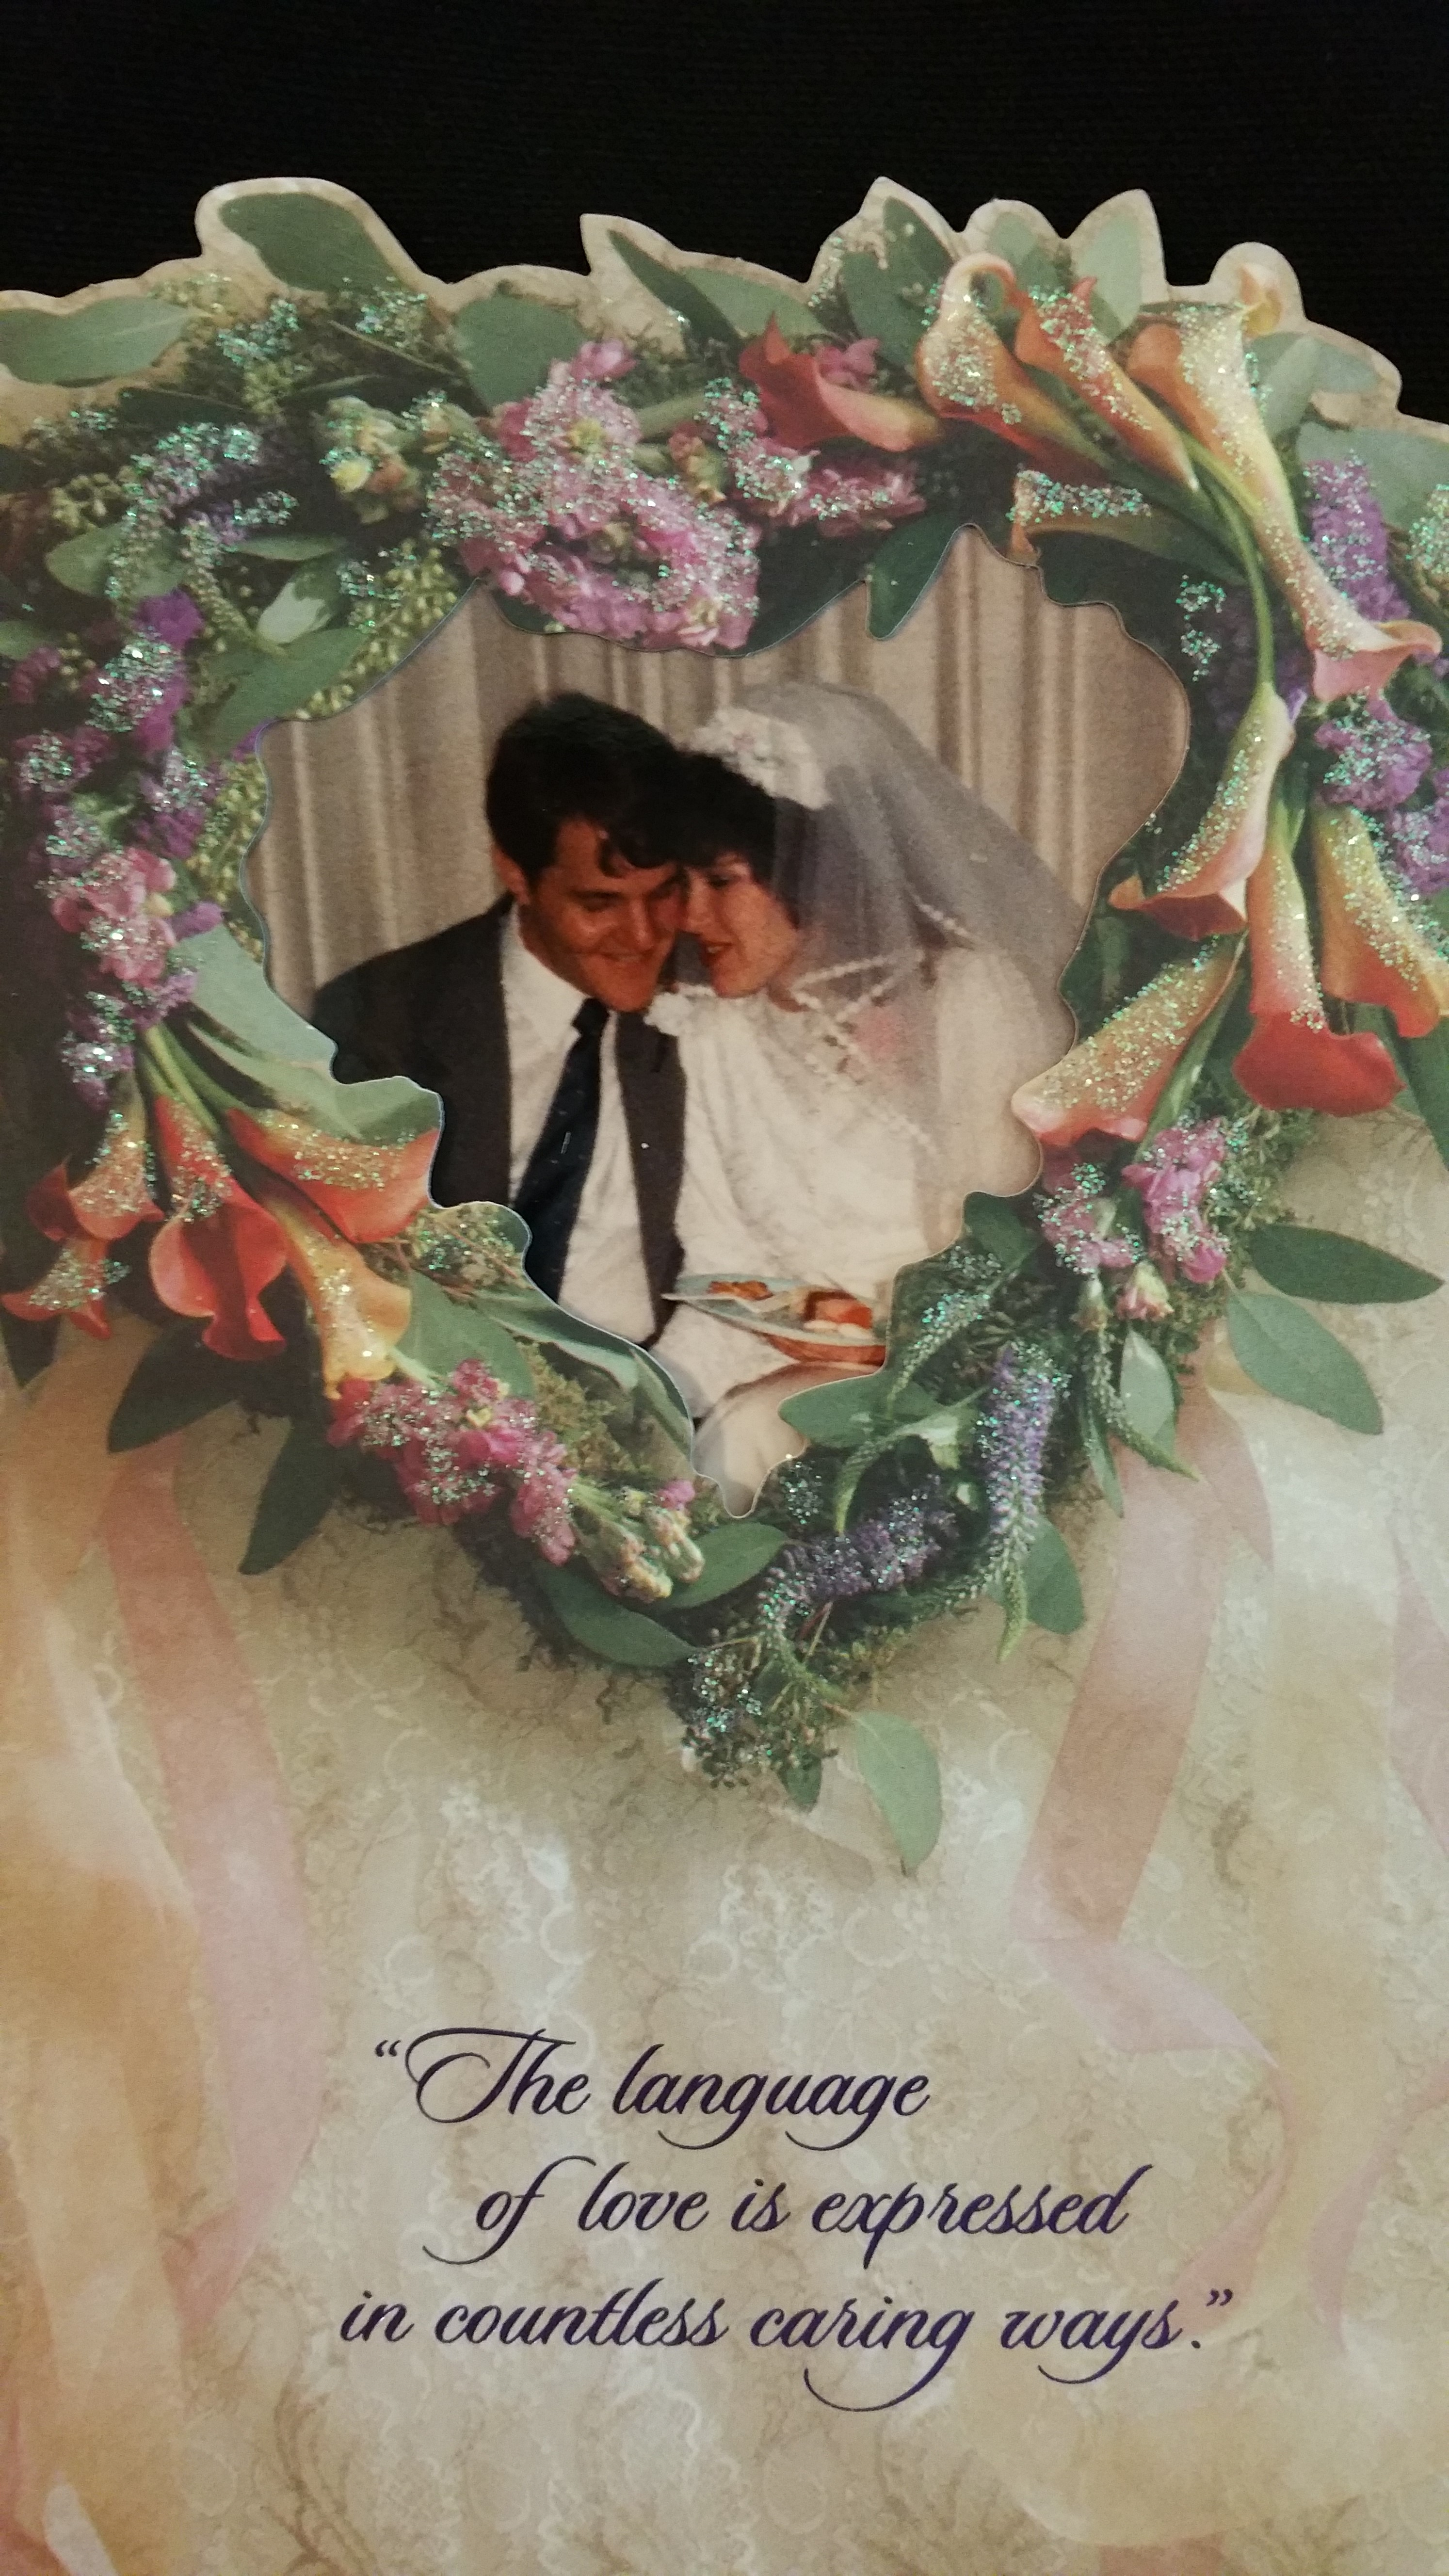 Wedding Anniversary After Death Of Spouse Quotes : wedding, anniversary, after, death, spouse, quotes, Anniversary, After, Death, Someone